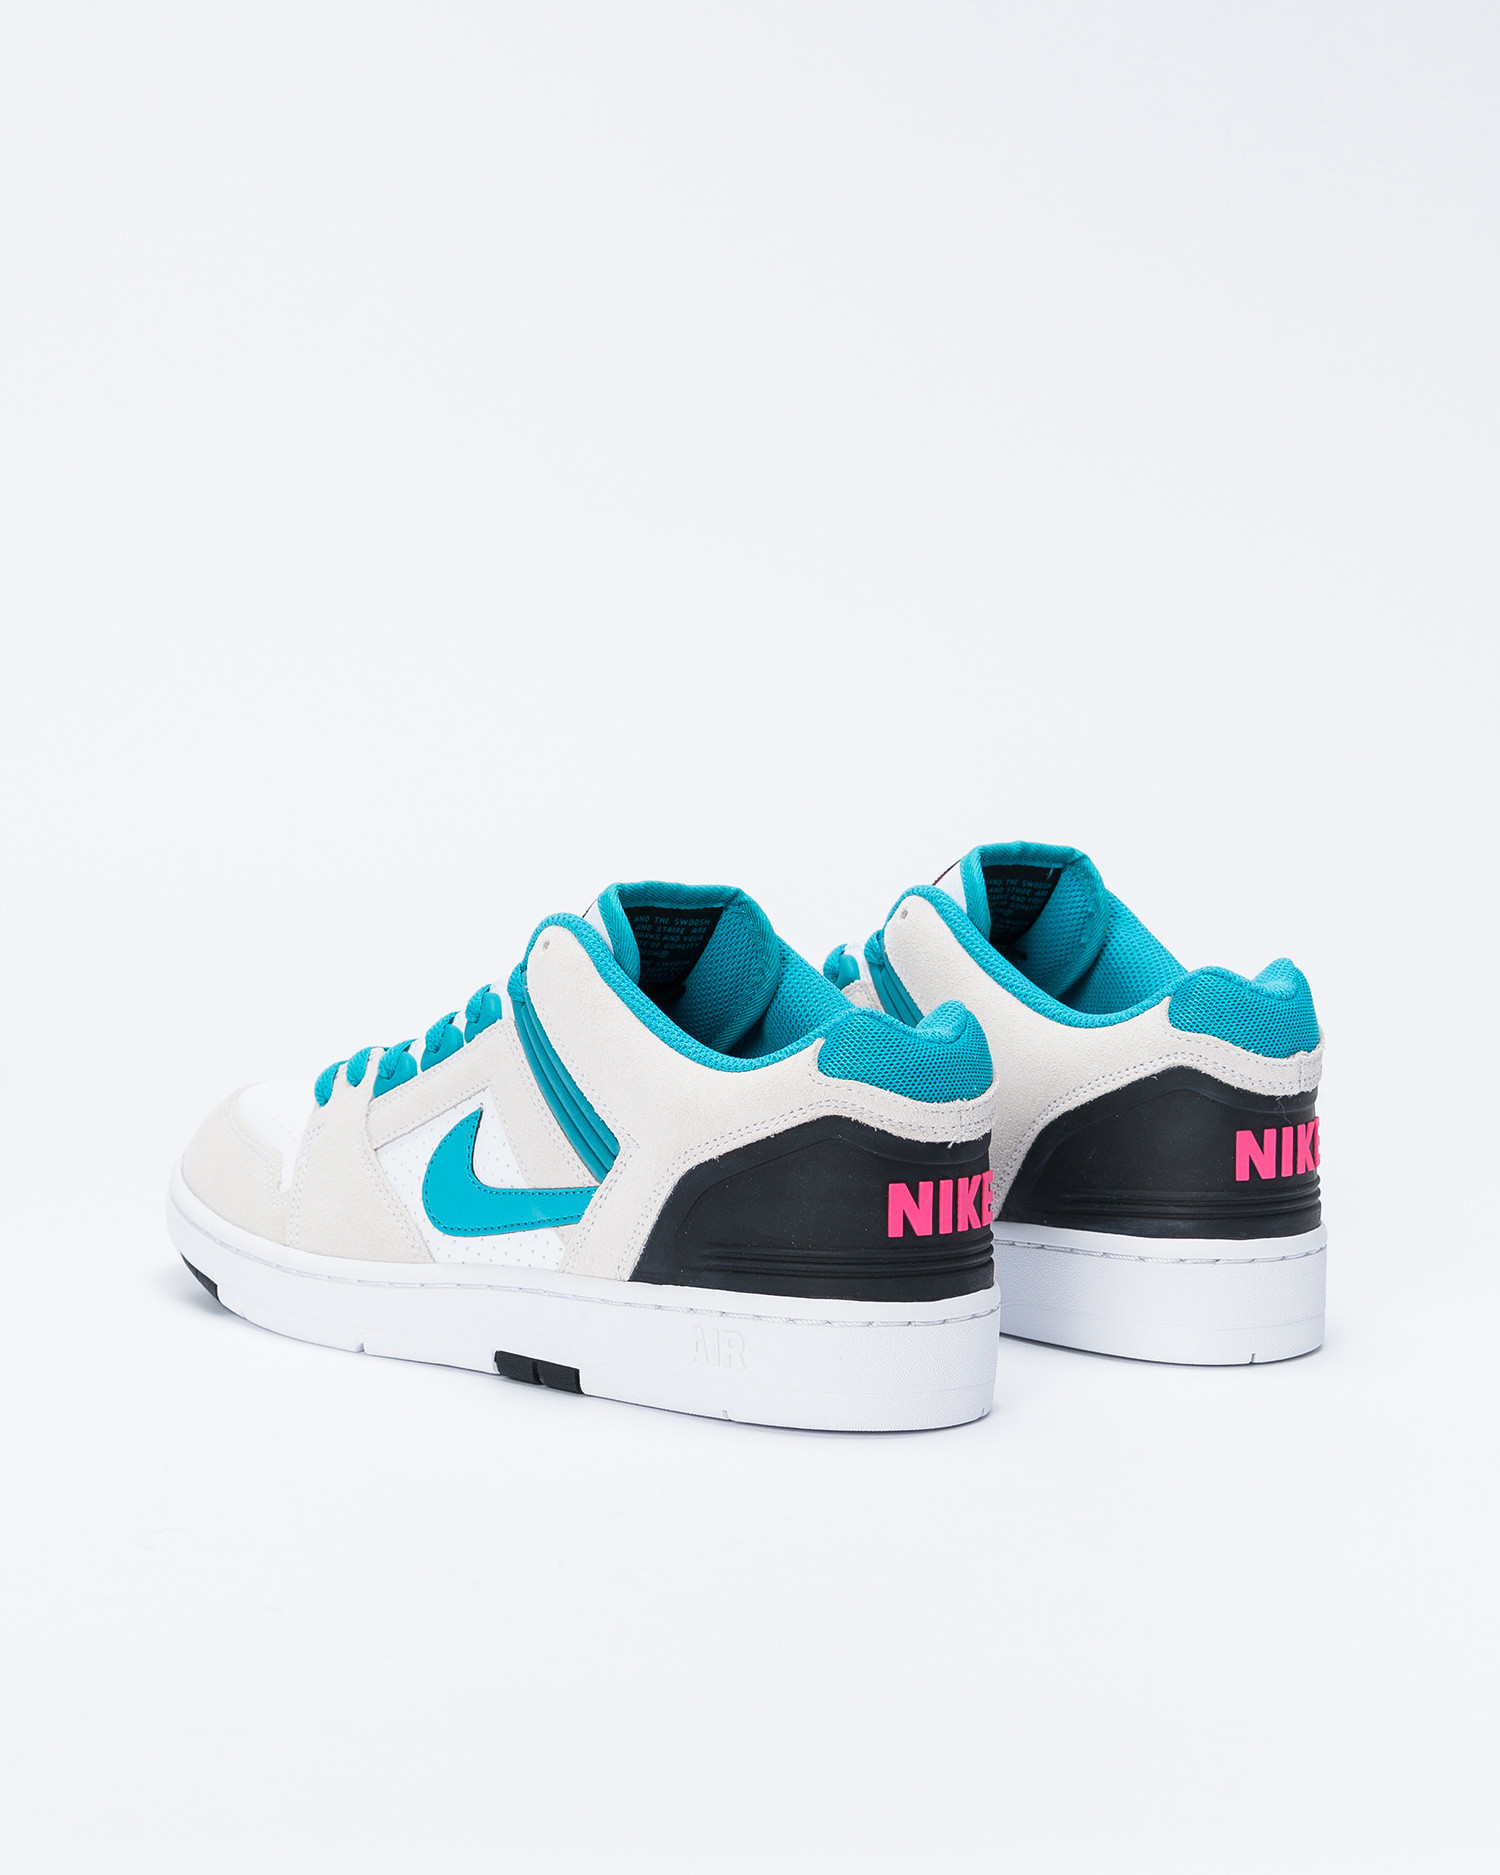 Nike SB Air Force II White/Teal Nebula/Black/Pink flash